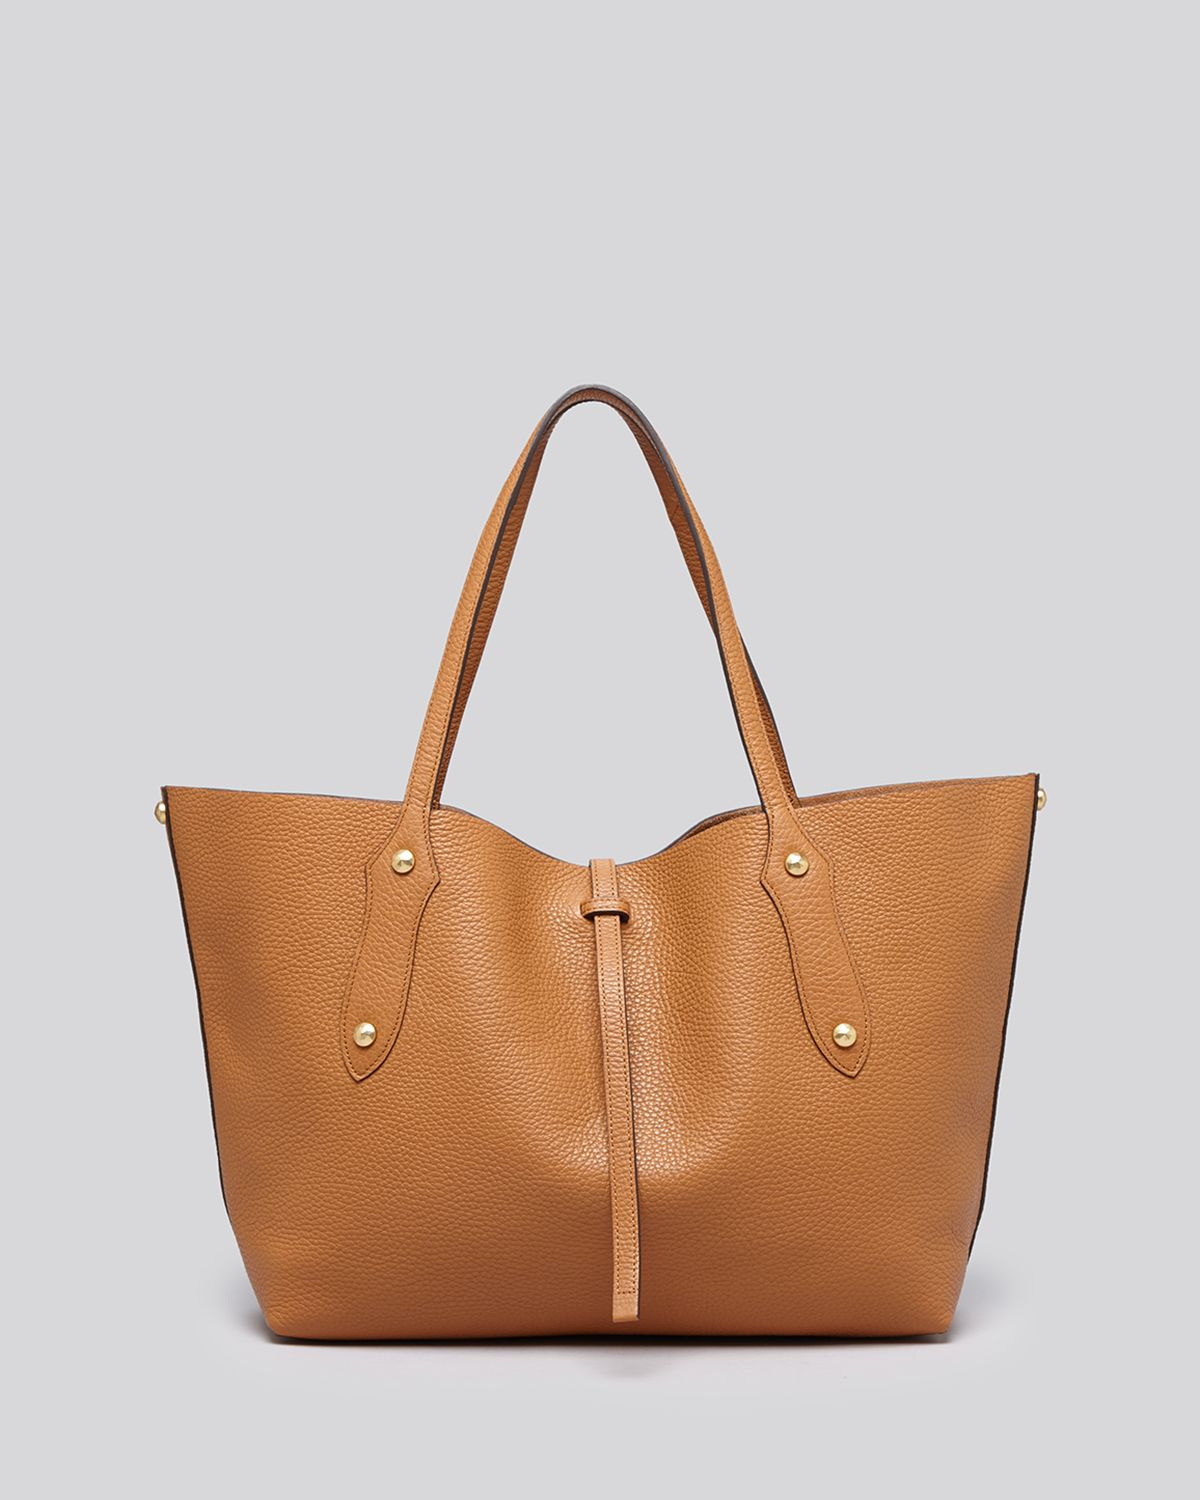 Lyst - Annabel Ingall Tote